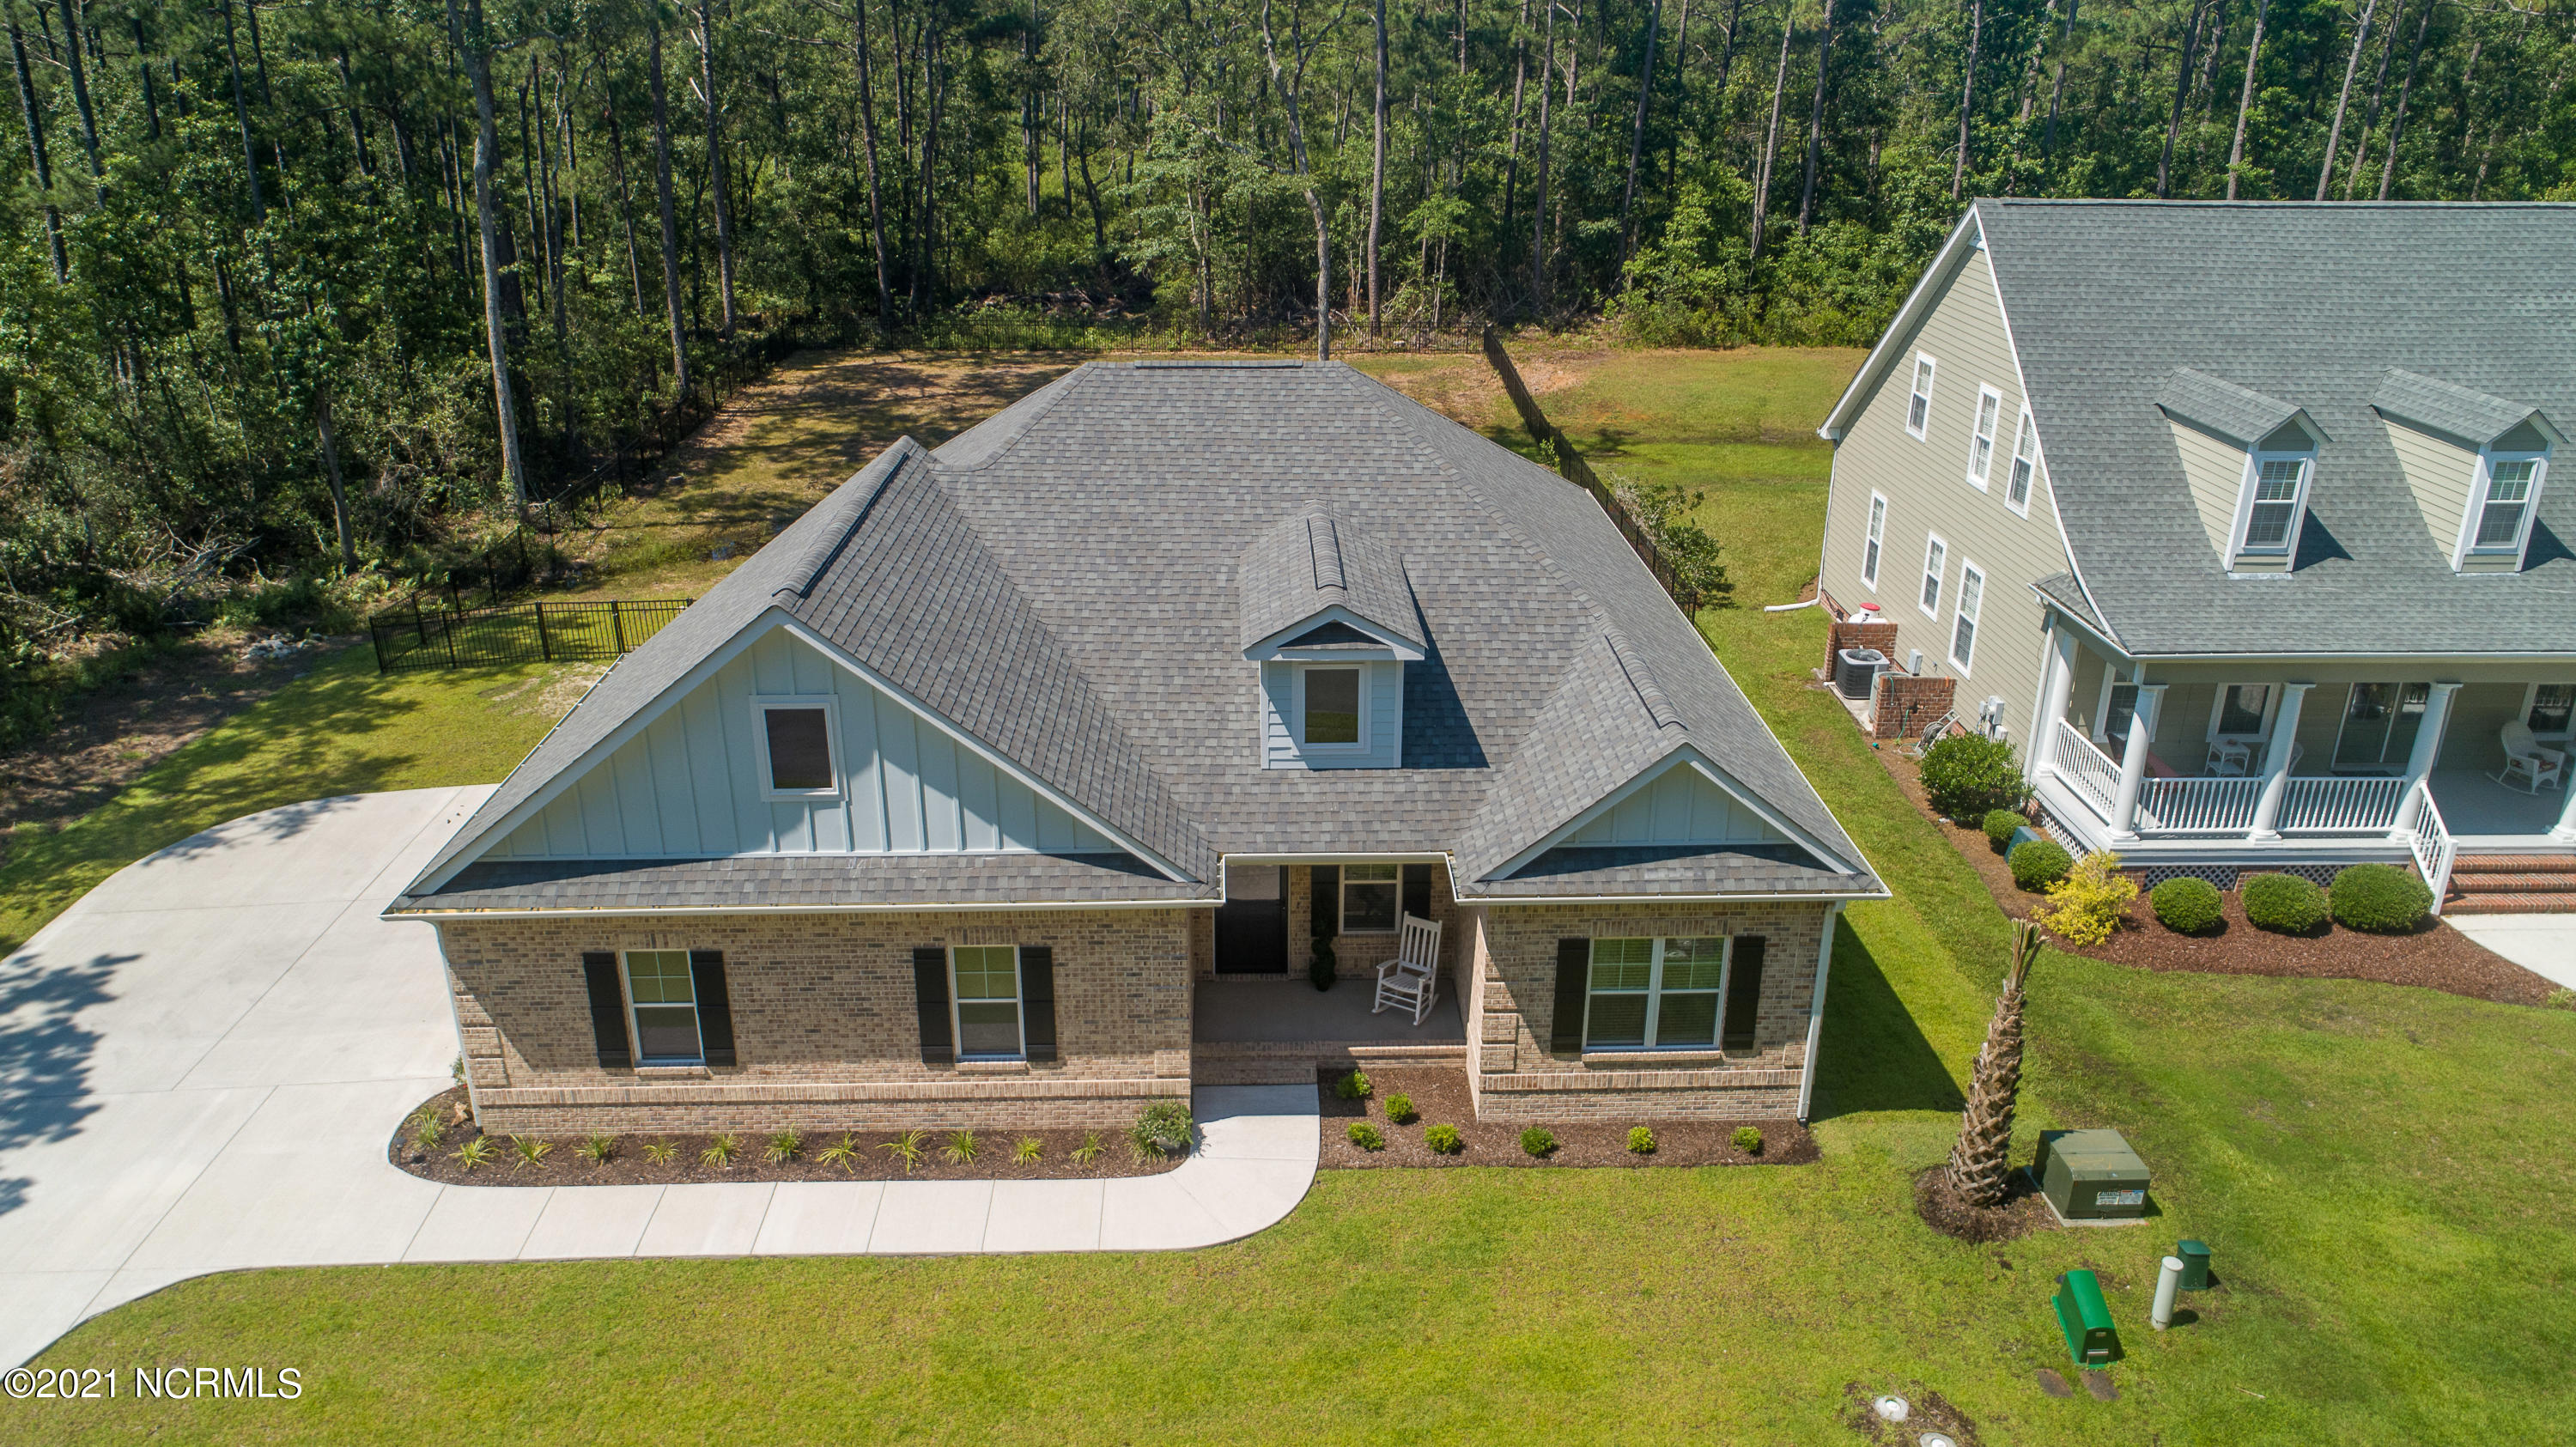 We consider this listing a Hole in One!  Now offering a unique, custom-built, coastal cottage with 3-bedroom, 2 baths, with an open-floor concept, and tons of natural lighting, plus a large fenced-in yard, all located in the prestigious North Shore Country Club community.  Just minutes from the world-renowned Topsail Beaches and a short distance from local dining and shopping. The convenience and beauty of the area are enough to make you want to call Coastal Carolina home.The house has many great features that you'll fall in love with. Pulling into the large driveway, you'll notice that you can't pass on the eye-catching curb appeal of the warm stone brickwork and the spacious side load, two car garage with pergola. The board and baton accents really make this house stand out. Barn doors, large baseboards, crown molding, trey/coffered ceiling, and wainscoting are all trim features that really make this coastal farm cottage feeling pop! A split floor plan has the two guest rooms located towards the front of the house offering plenty of separation from the master suite.  All bedrooms have large  closets, both baths have sandstone countertops, and the spacious master bath features an enormous, tiled shower.  The inviting kitchen is charming with cabinetry finished with crown molding and stainless-steel appliances, quartz countertops and tiled backsplash that give the area a classy feeling. There is PLENTY of cabinet storage space for the most avid chef in your family and a double door pantry as well!Contact us today to ''Unlock the Possibilities'' of making this gorgeous house your new home!